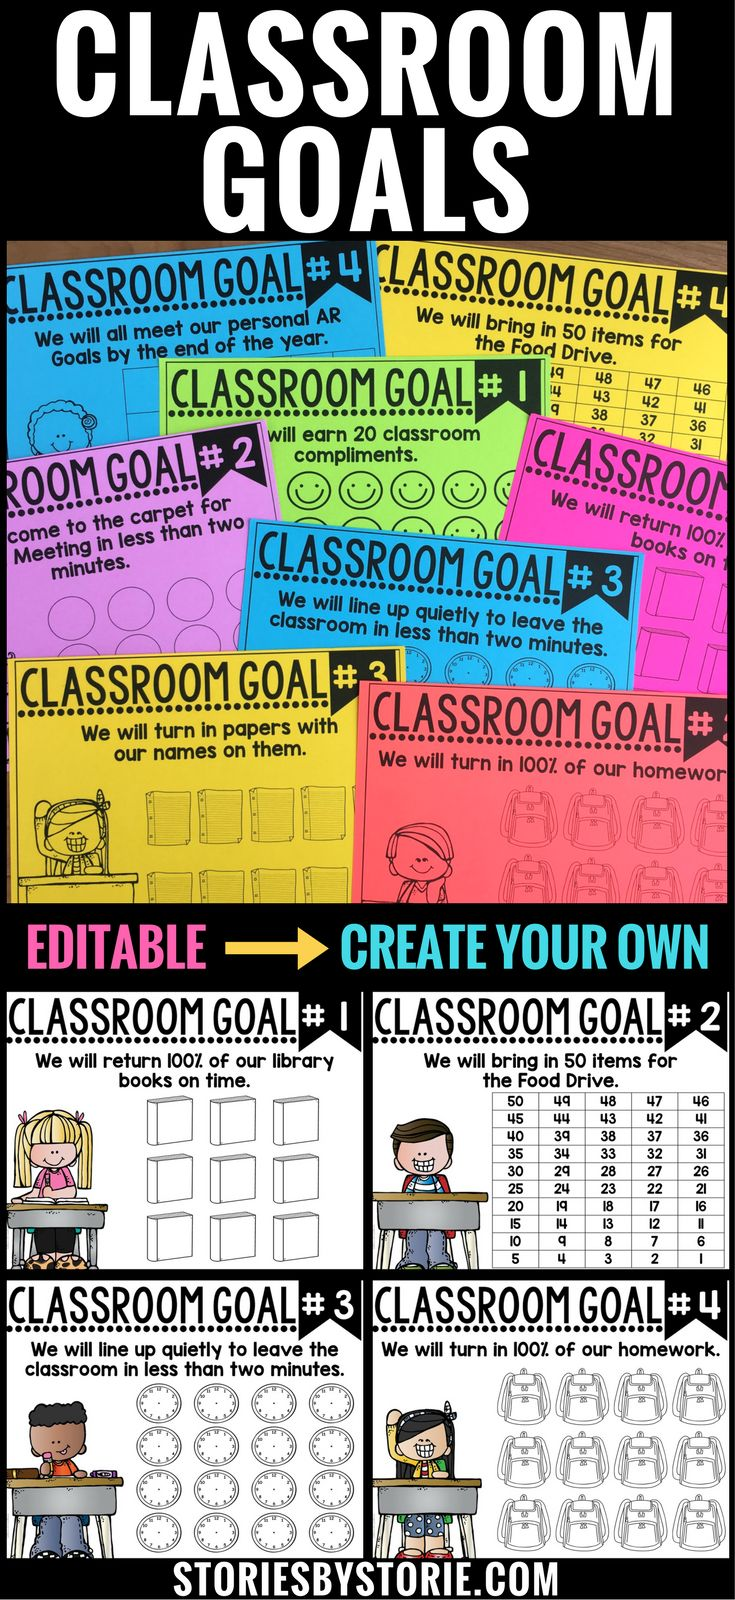 Goals help set a purpose and a direction for where you are headed. While you are building your classroom community, why not take the time to make some common goals that EVERY student in your classroom can work towards? These classroom goal sheets will help your students visually track their progress.